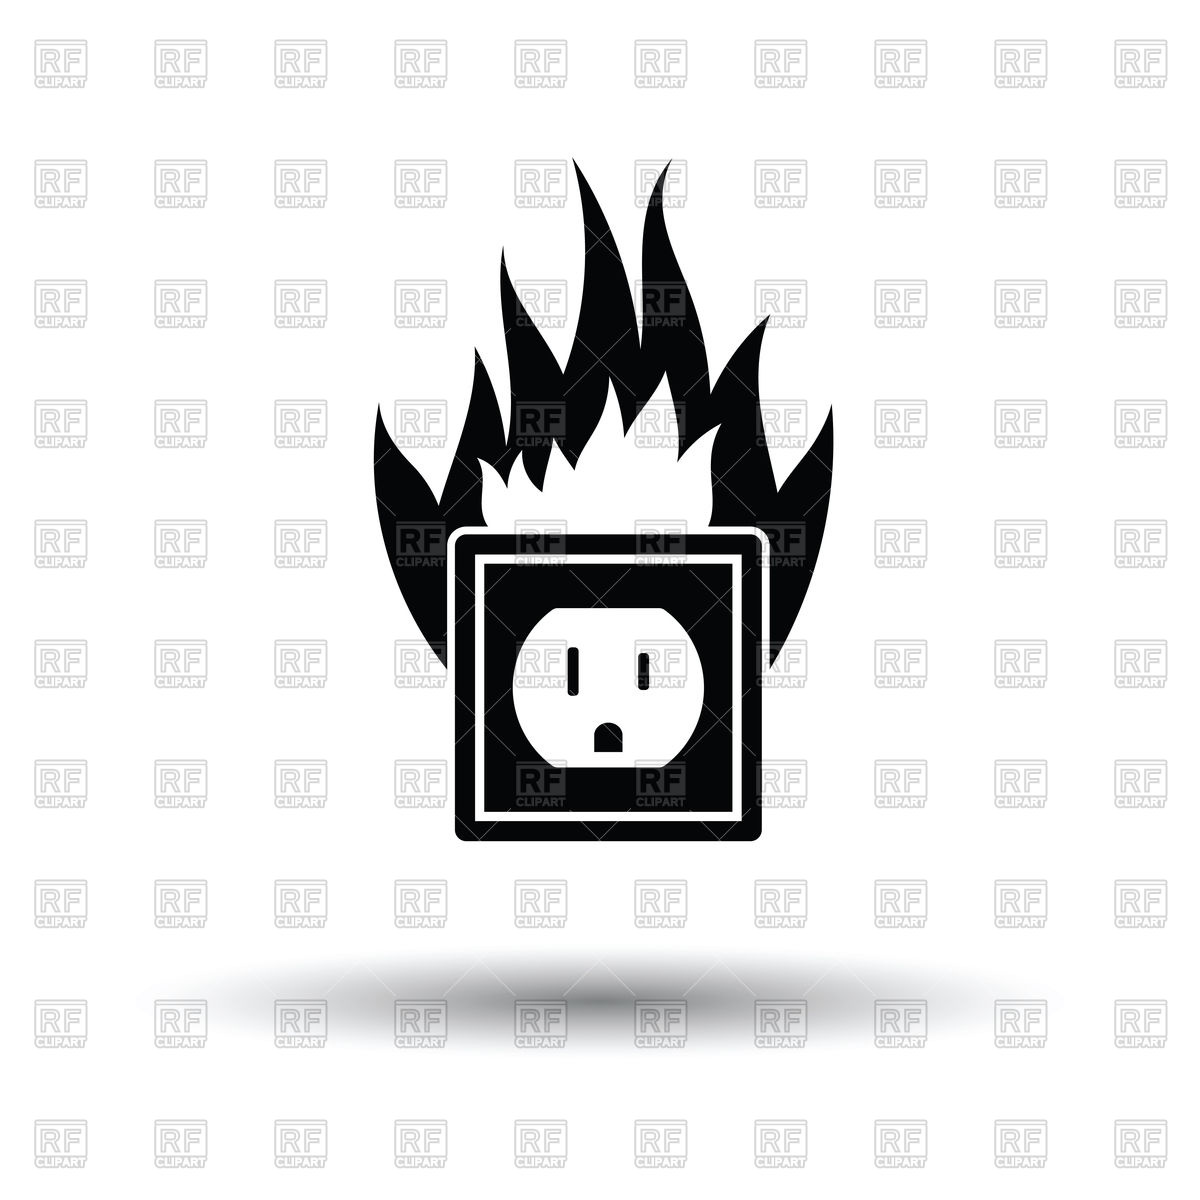 Electrical outlet fire icon Stock Vector Image.